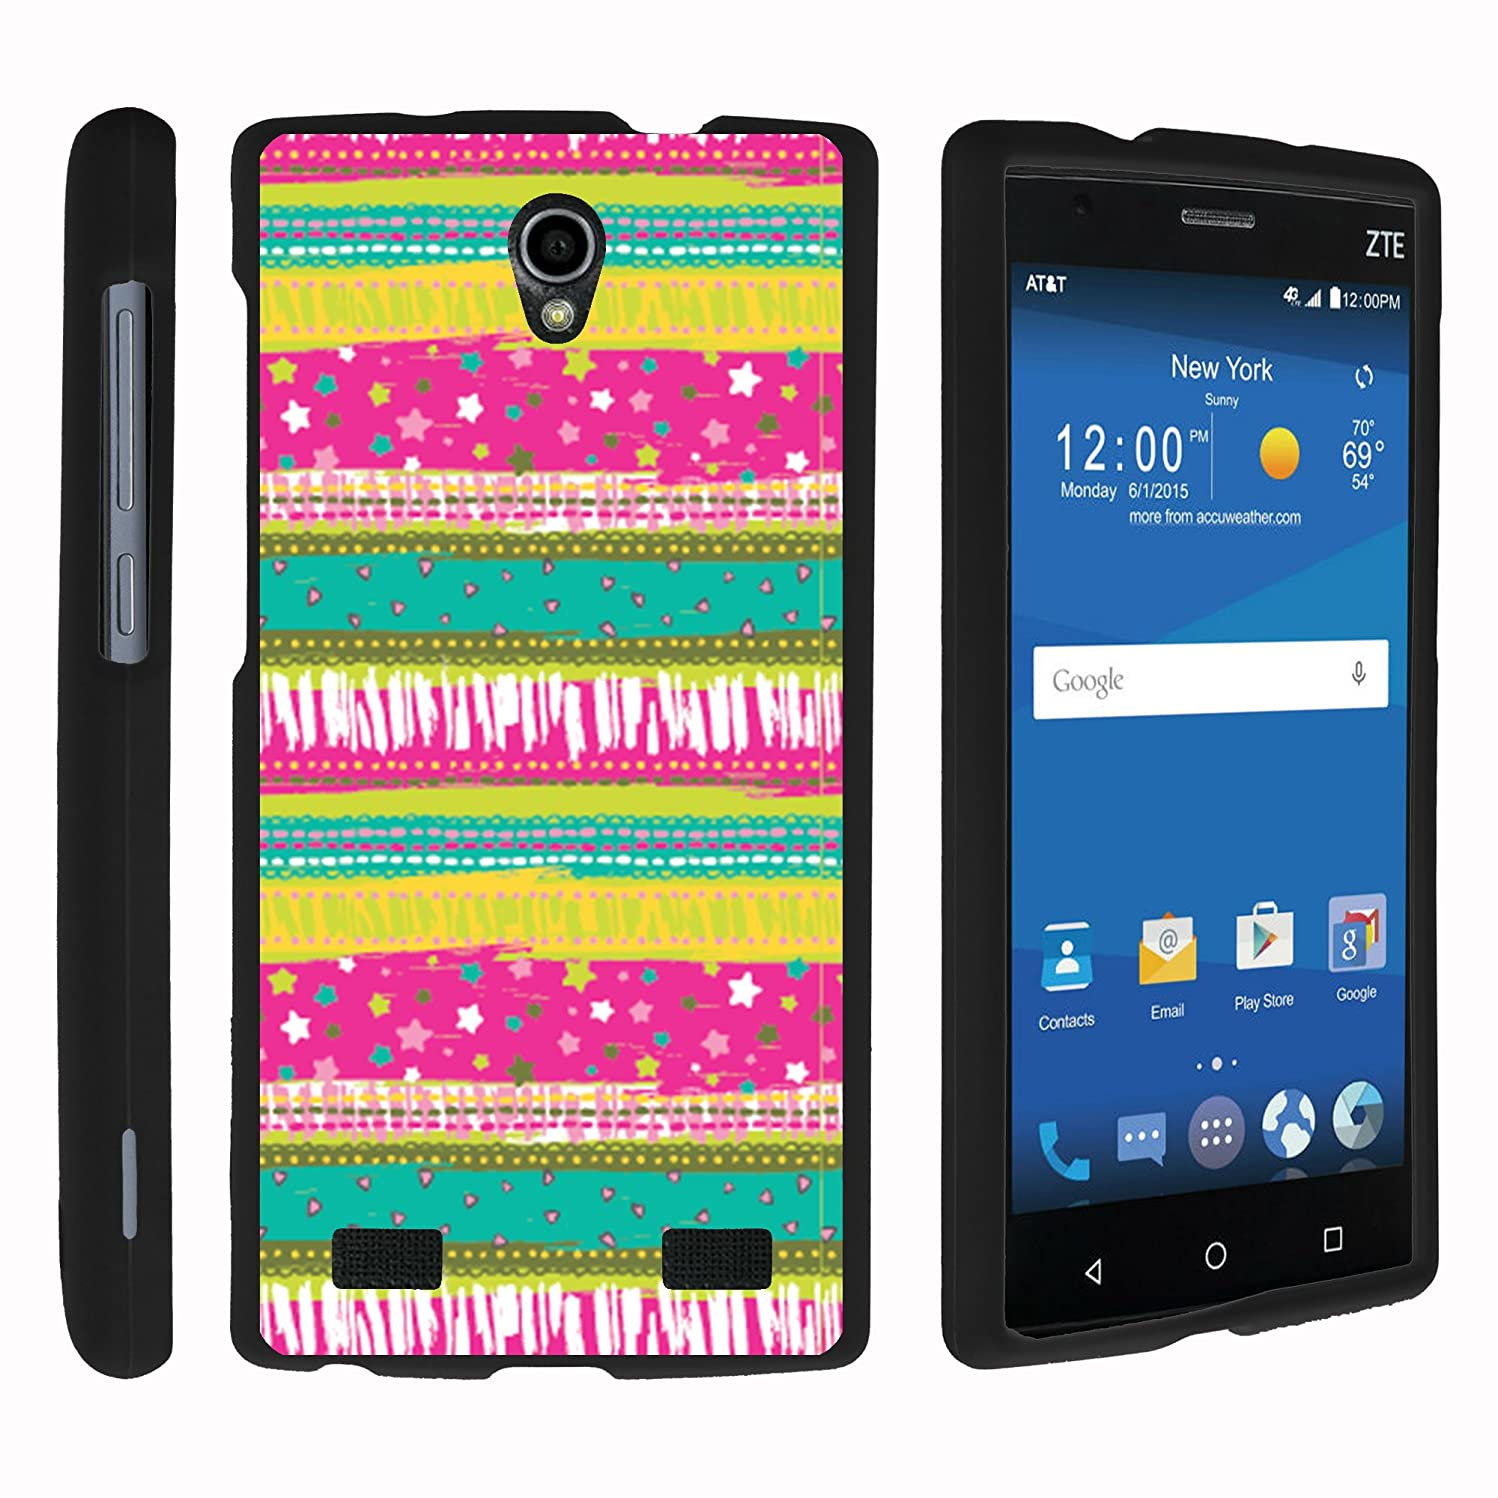 MINITURTLE Case Compatible w/ ZTE ZMAX 2 Phone Case, Stylish Personalized Protective Snap On Hard Case Phone Protector for ZTE ZMAX 2 Z958 - Dazzling Pattern